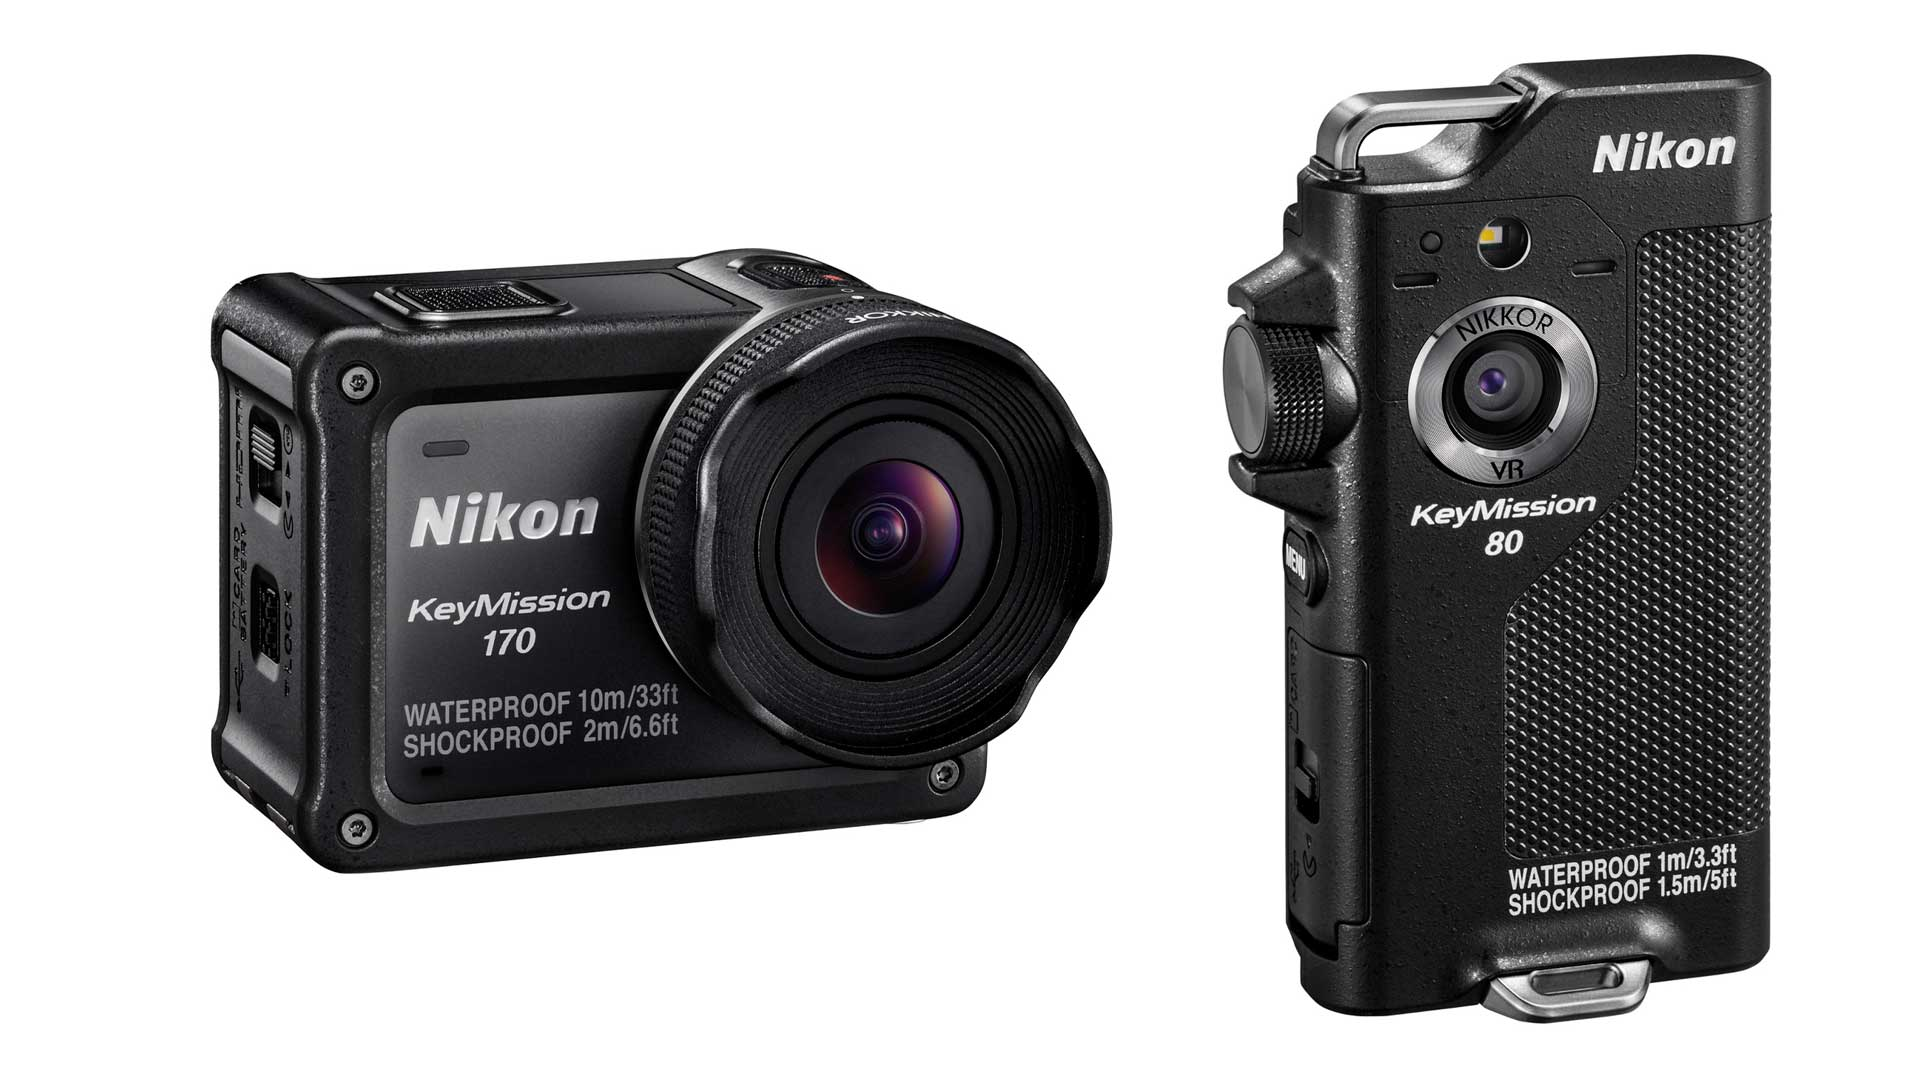 Nuove action cam Nikon KeyMission 170 e KeyMission 80